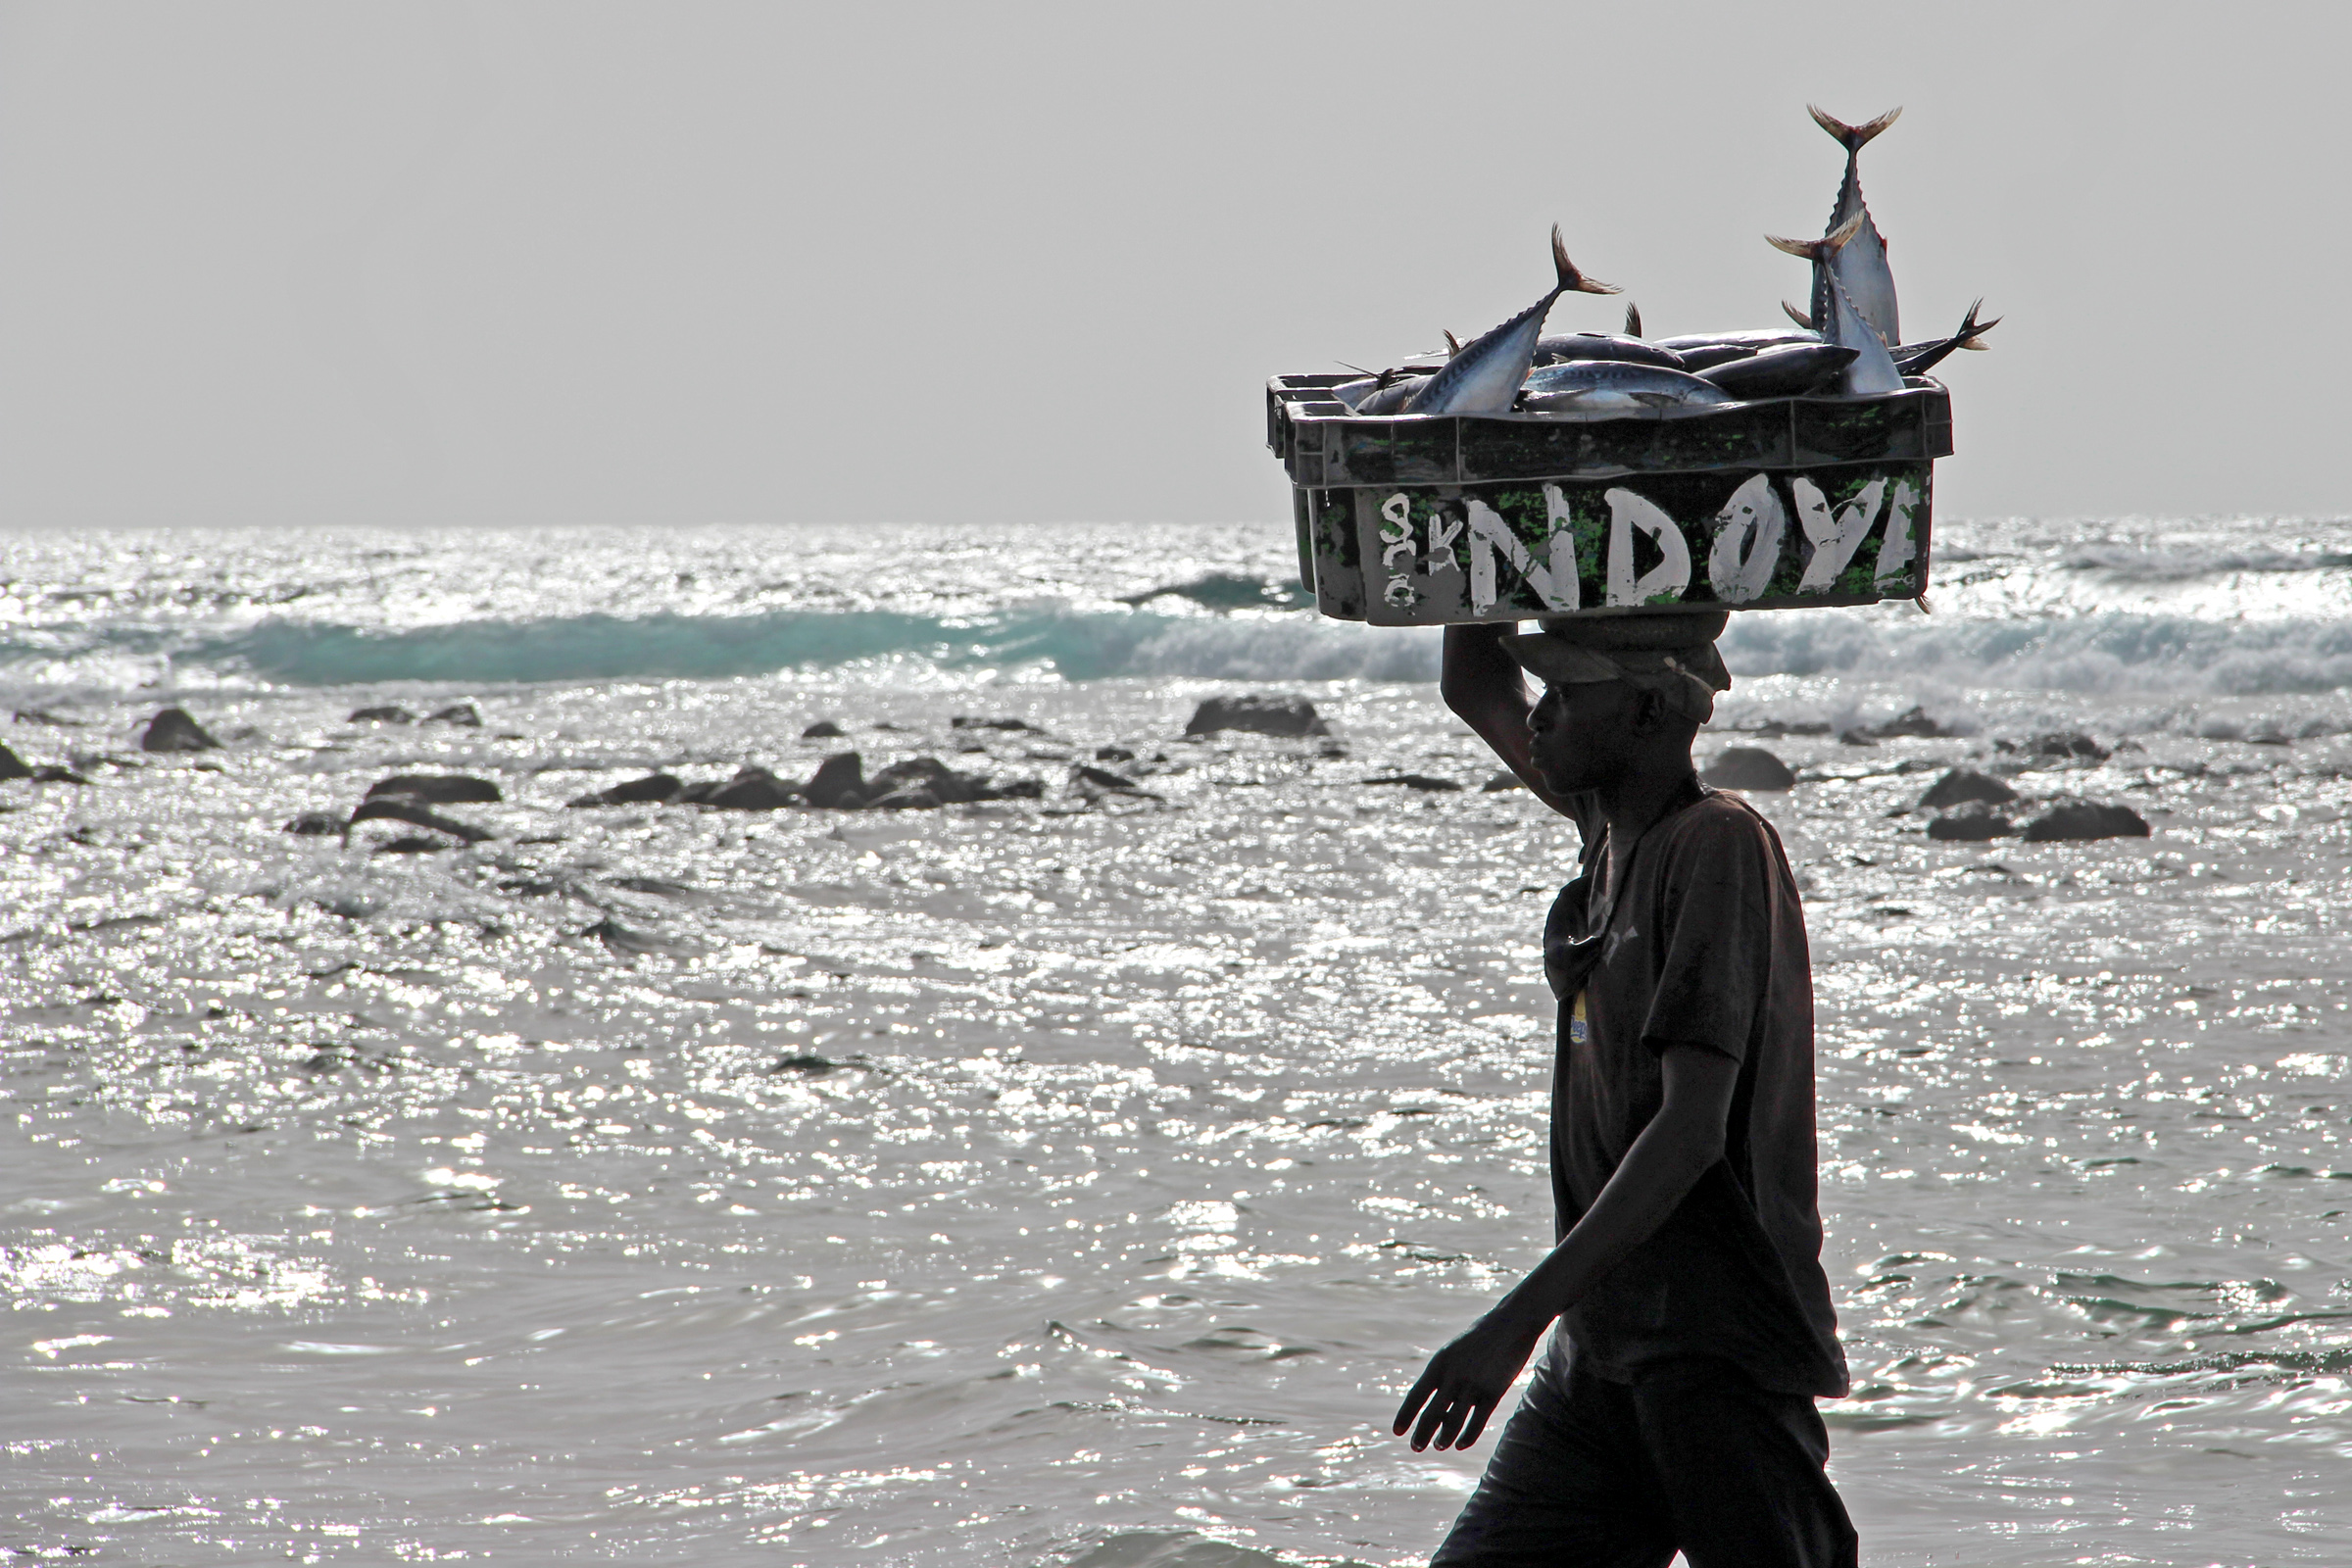 Senegalese fisherman carries a load of fish onshore. Local fishermen have protested that foreign vessels licence by the government are overexploiting fish resources, prompting authorities in May 2012 to revoke licences of 29 foreign fishing trawlers